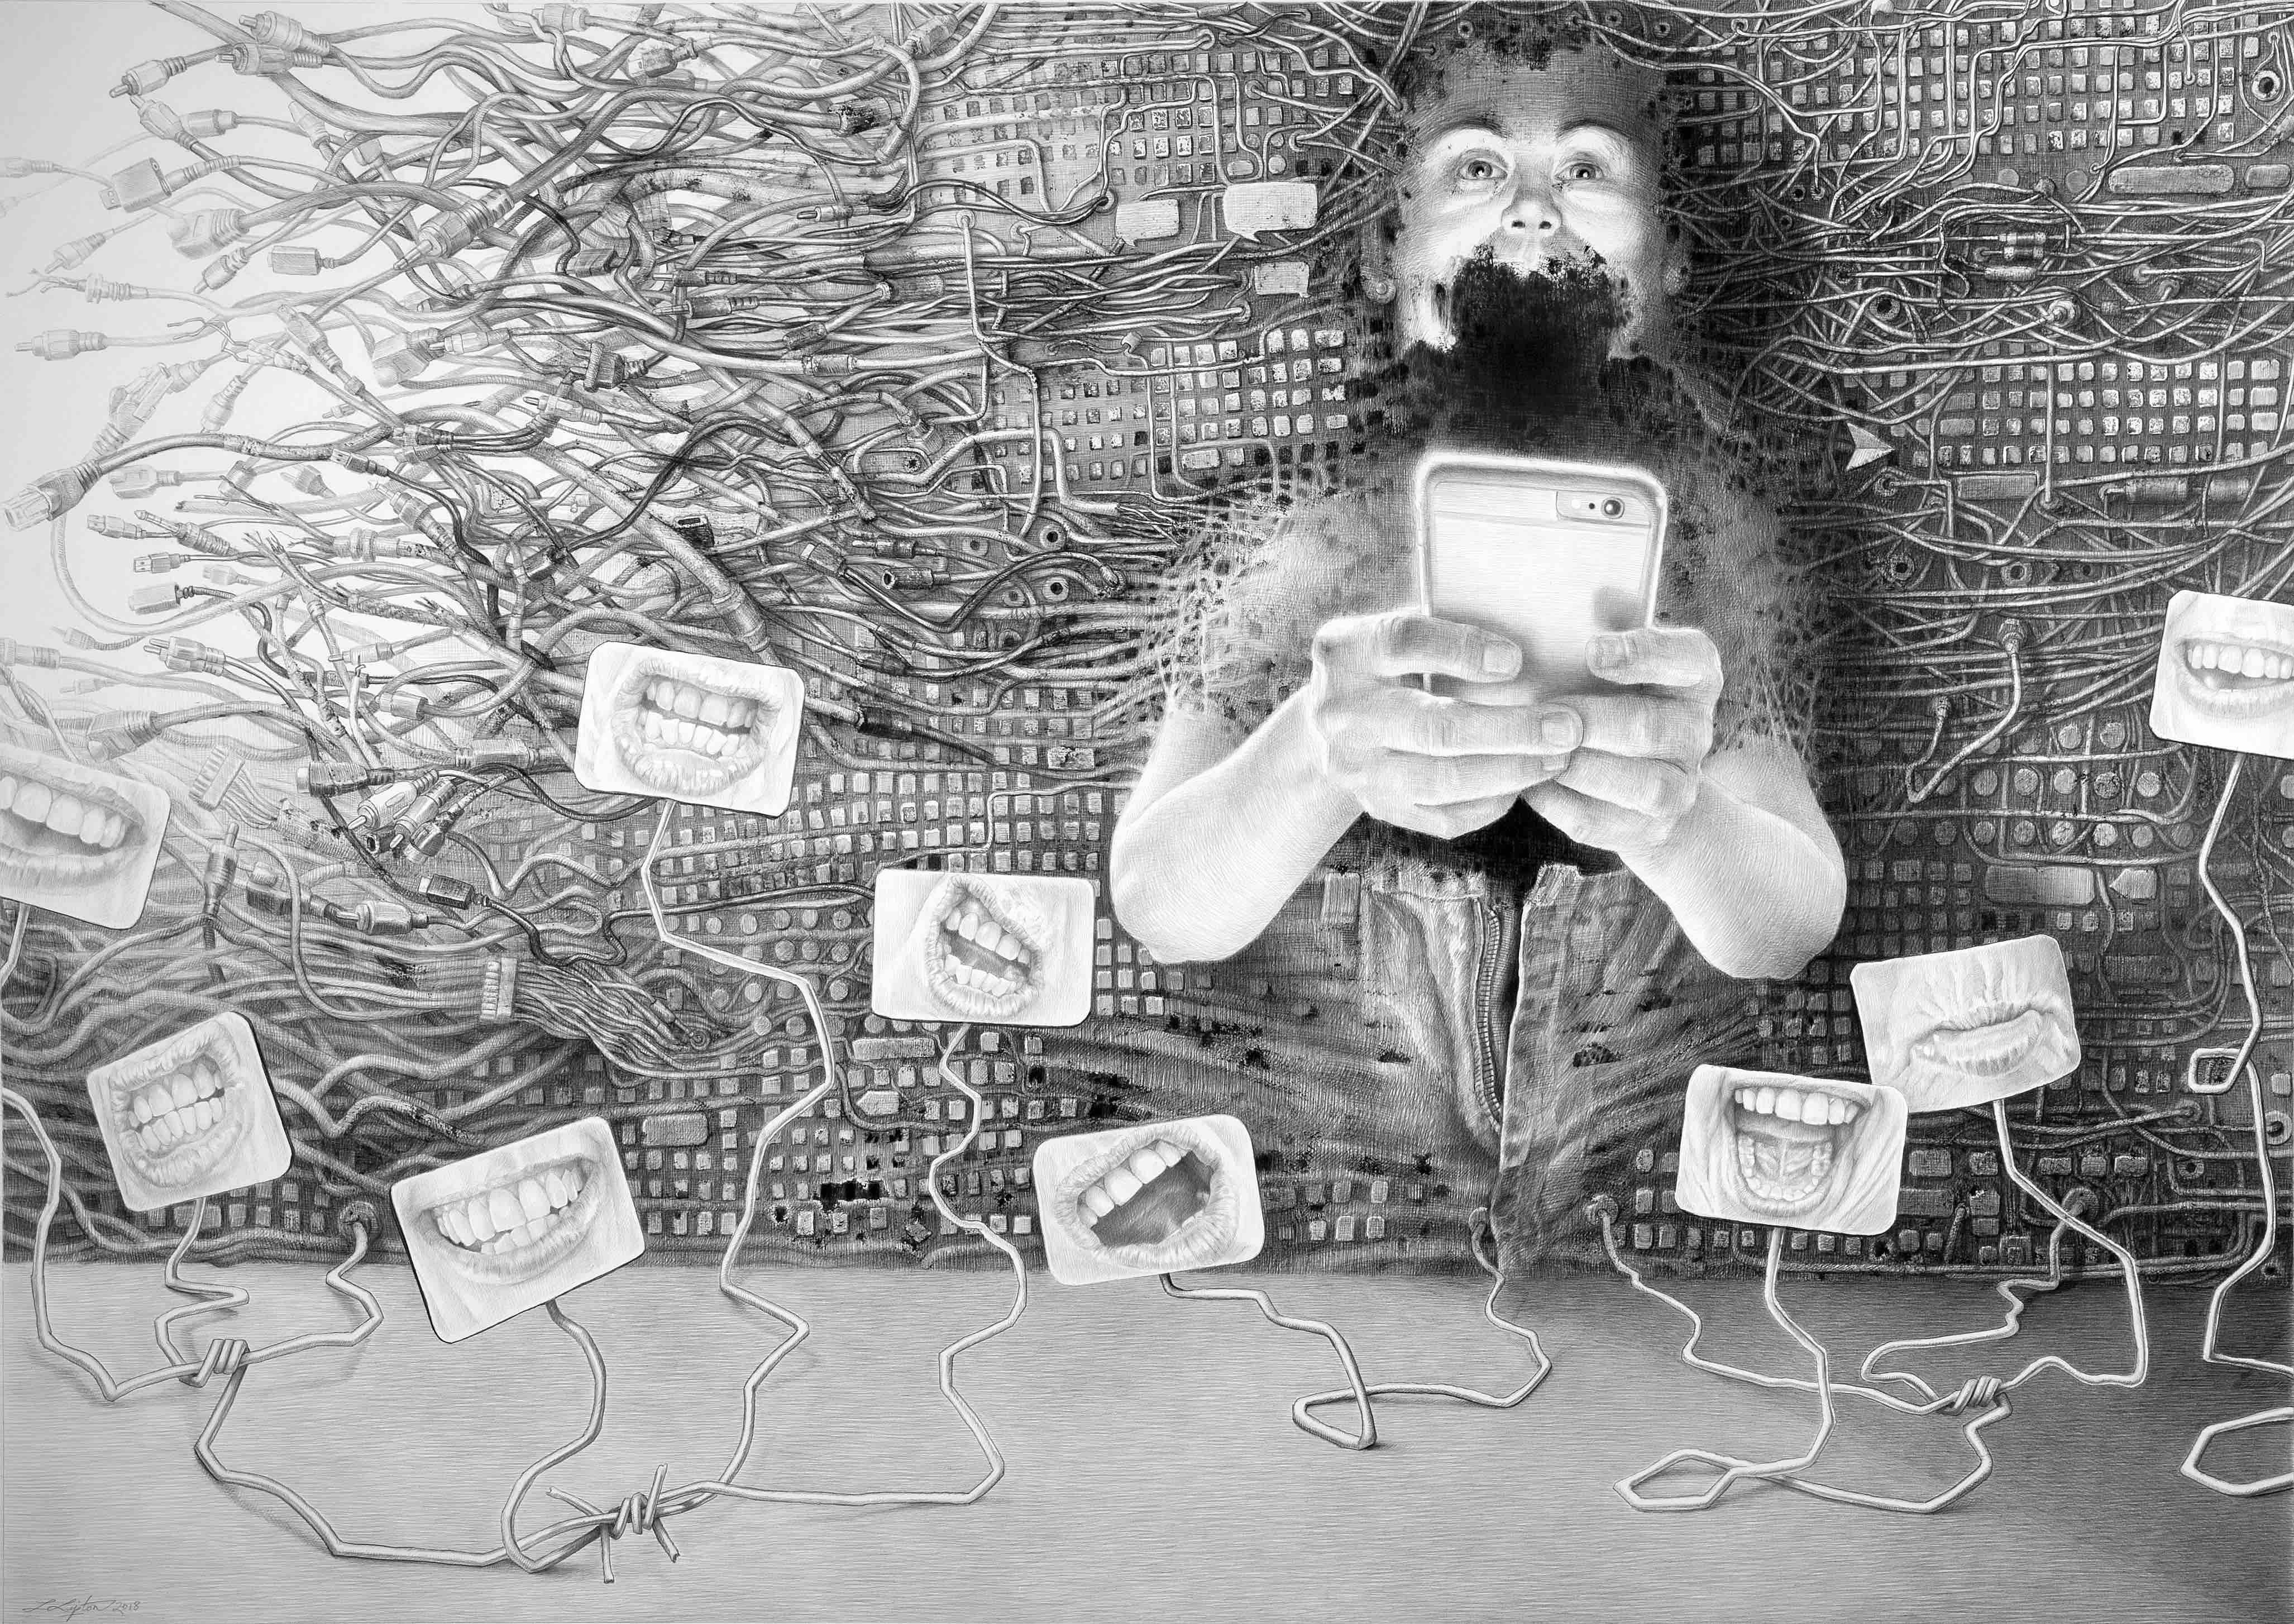 Laurie Lipton drawing, text messaging, drawing, contemporary art, womens art, technology, pencil, charcoal